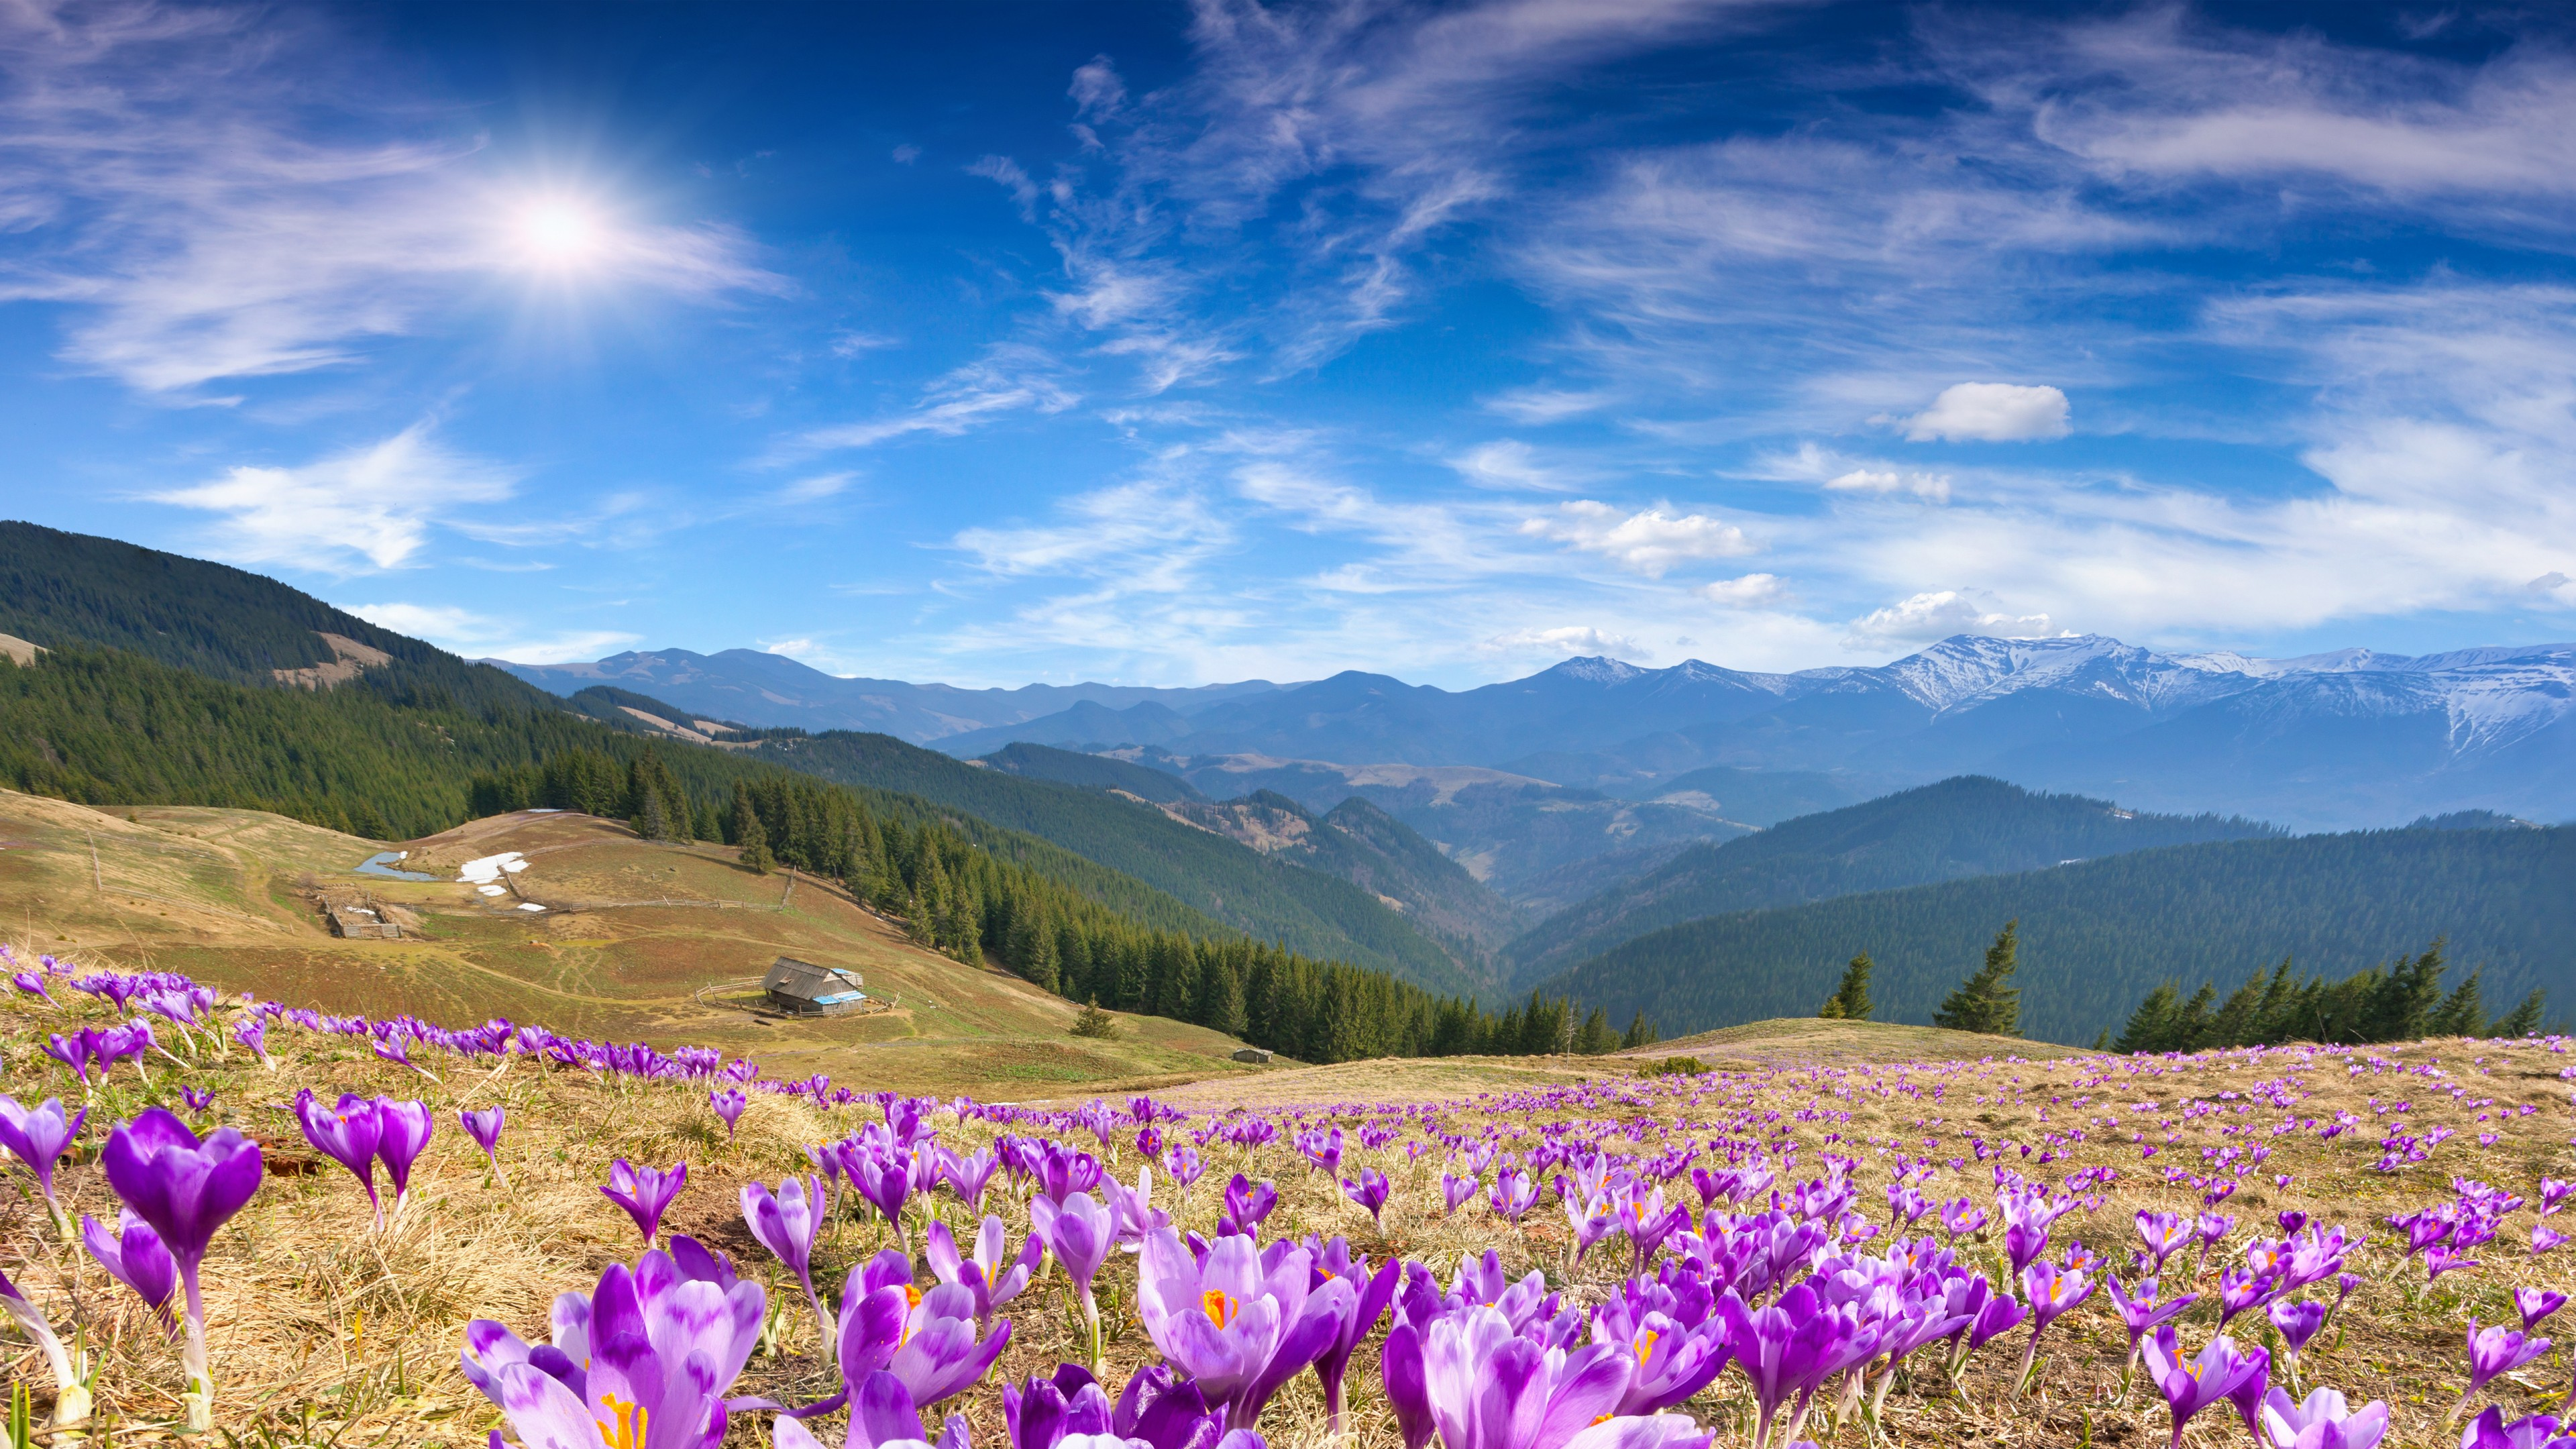 Wallpapers Crocus flowers, Mountains, Spring, Sunny day, 5K, Nature